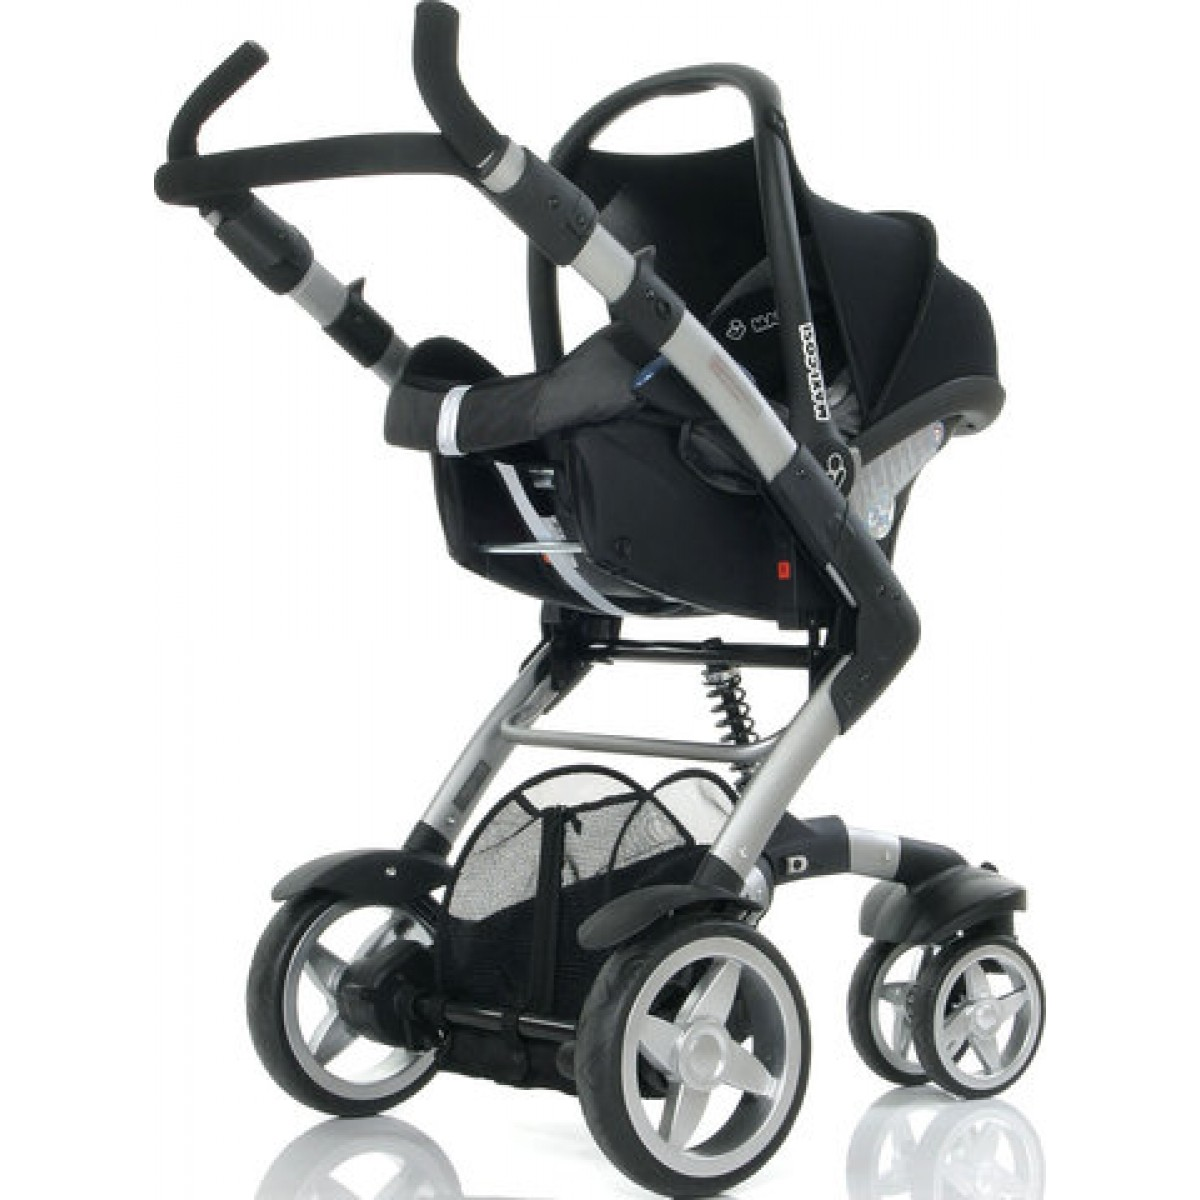 abc design adapteri priek maxi cosi cybex uz turbo viper. Black Bedroom Furniture Sets. Home Design Ideas